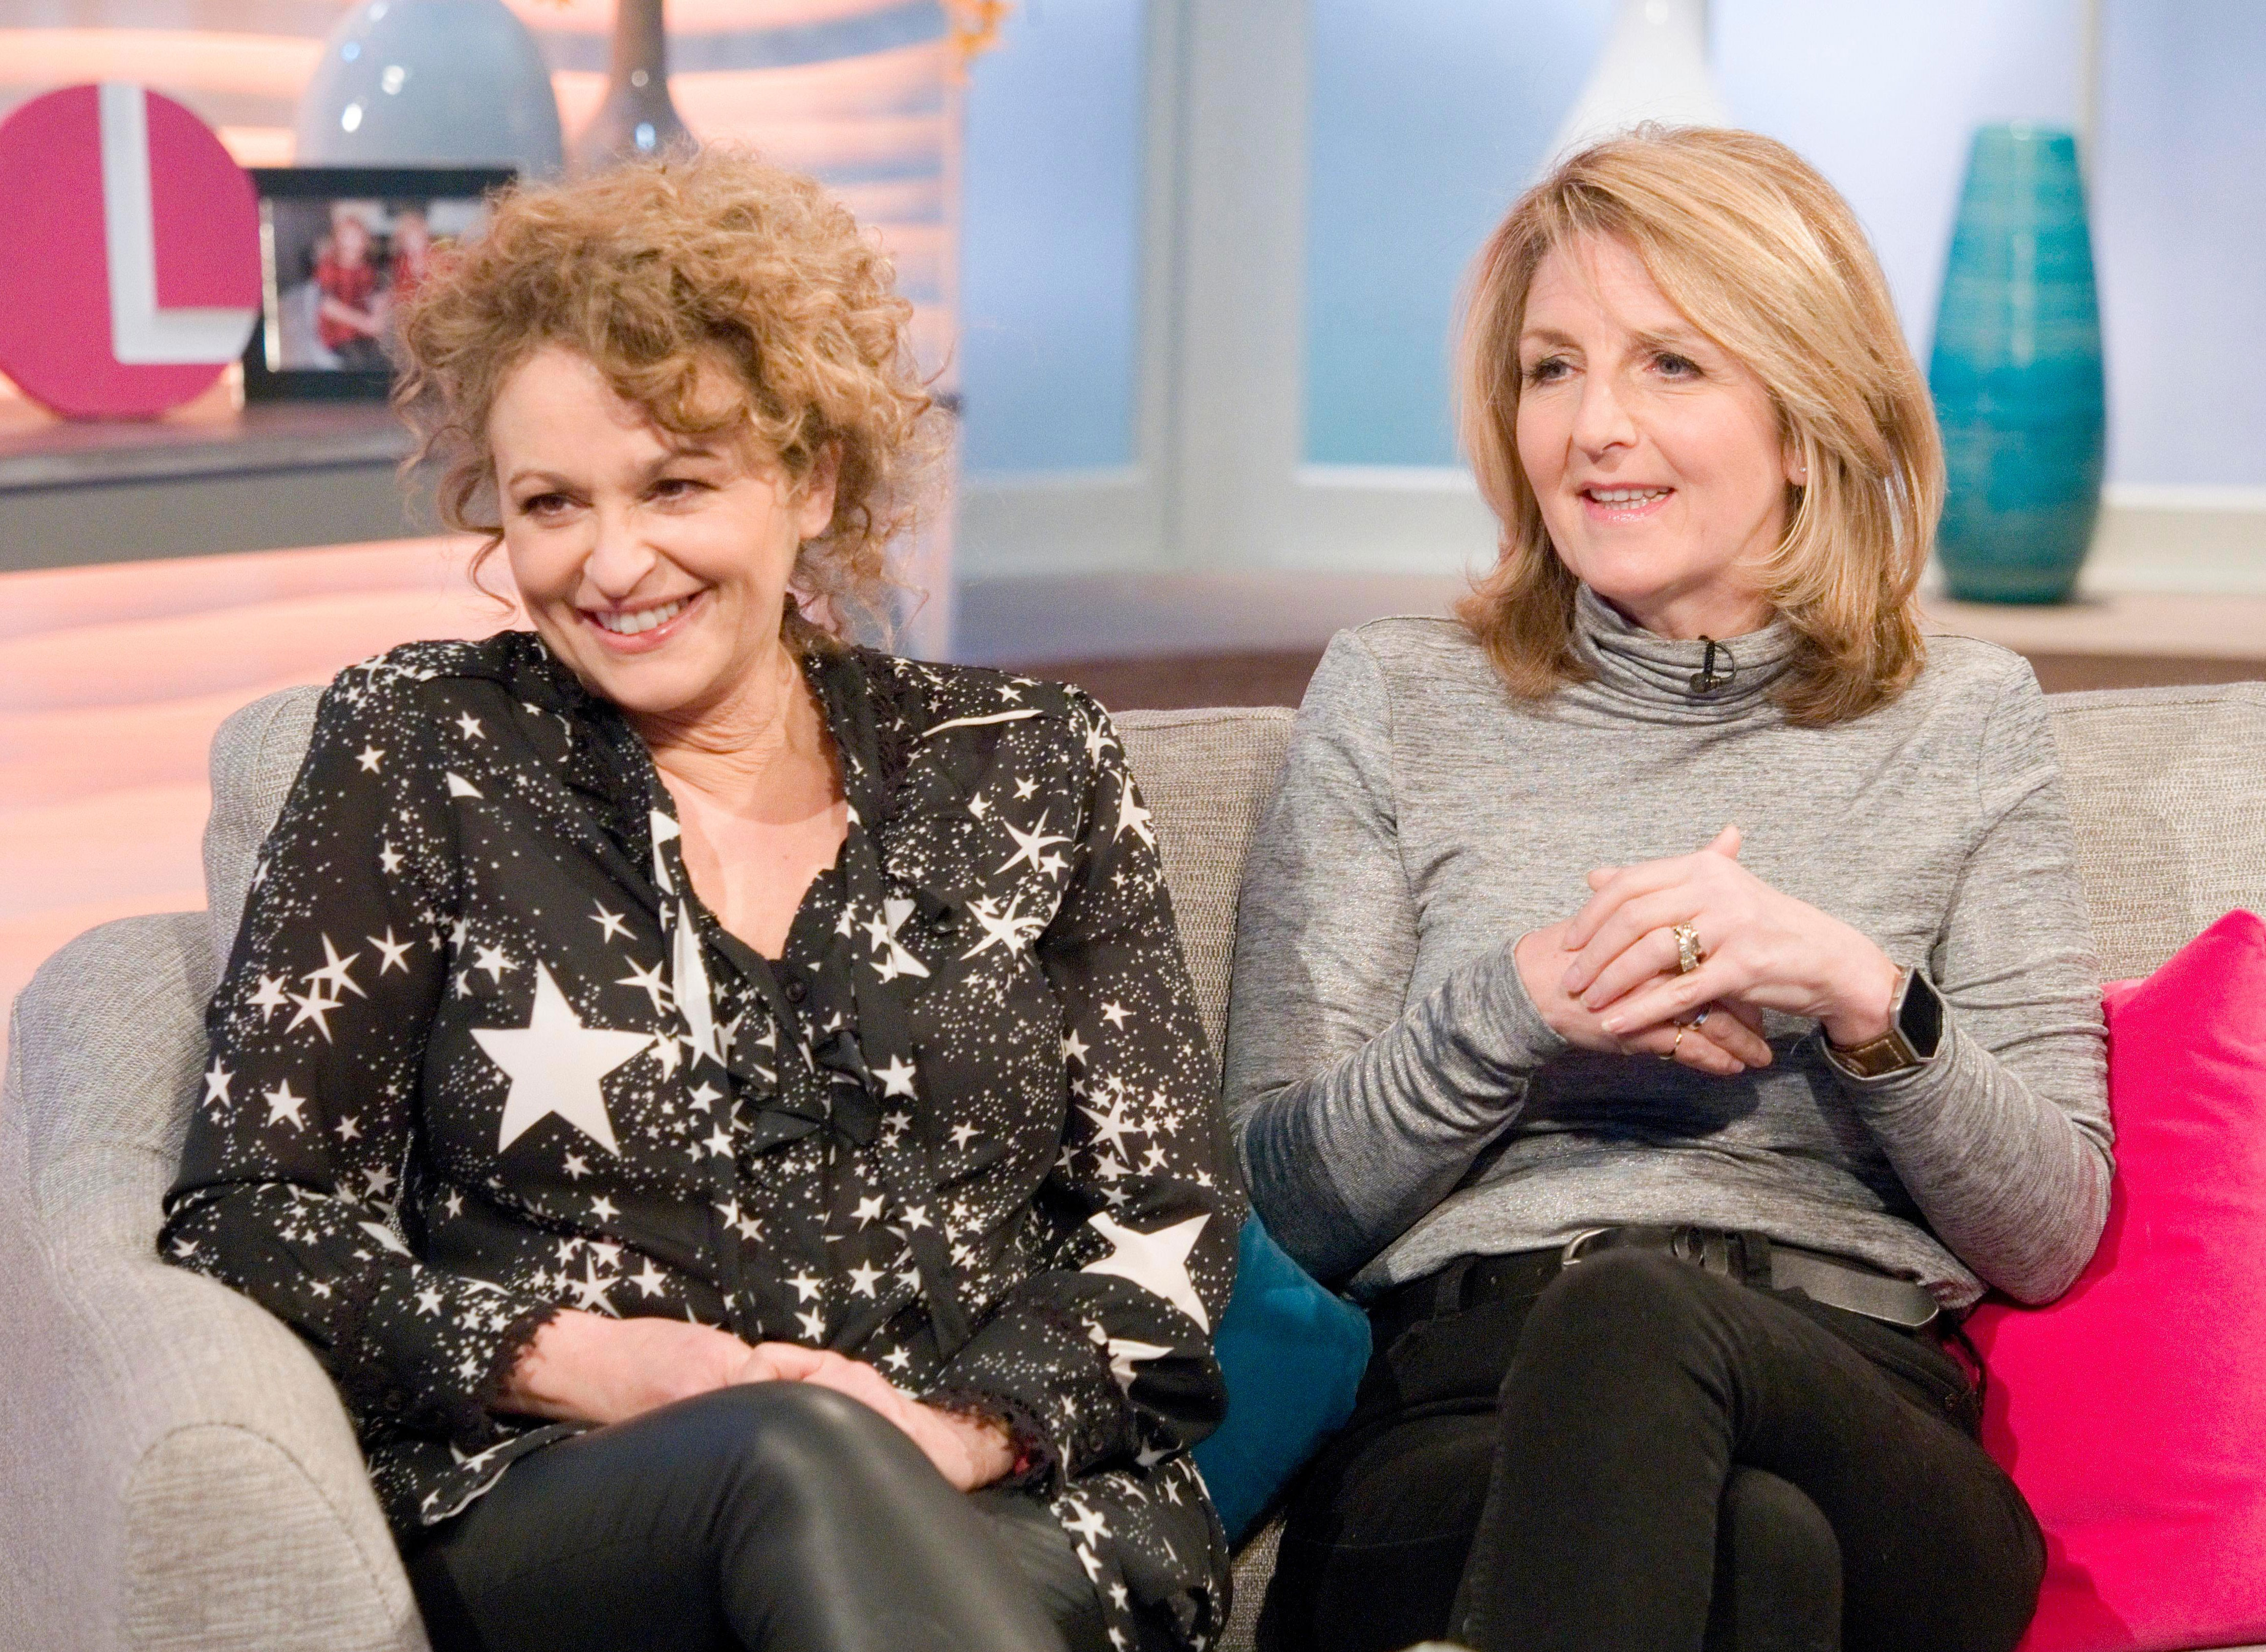 Watch Nadia Sawalha reveals plastic surgery plans following years of body insecurities video